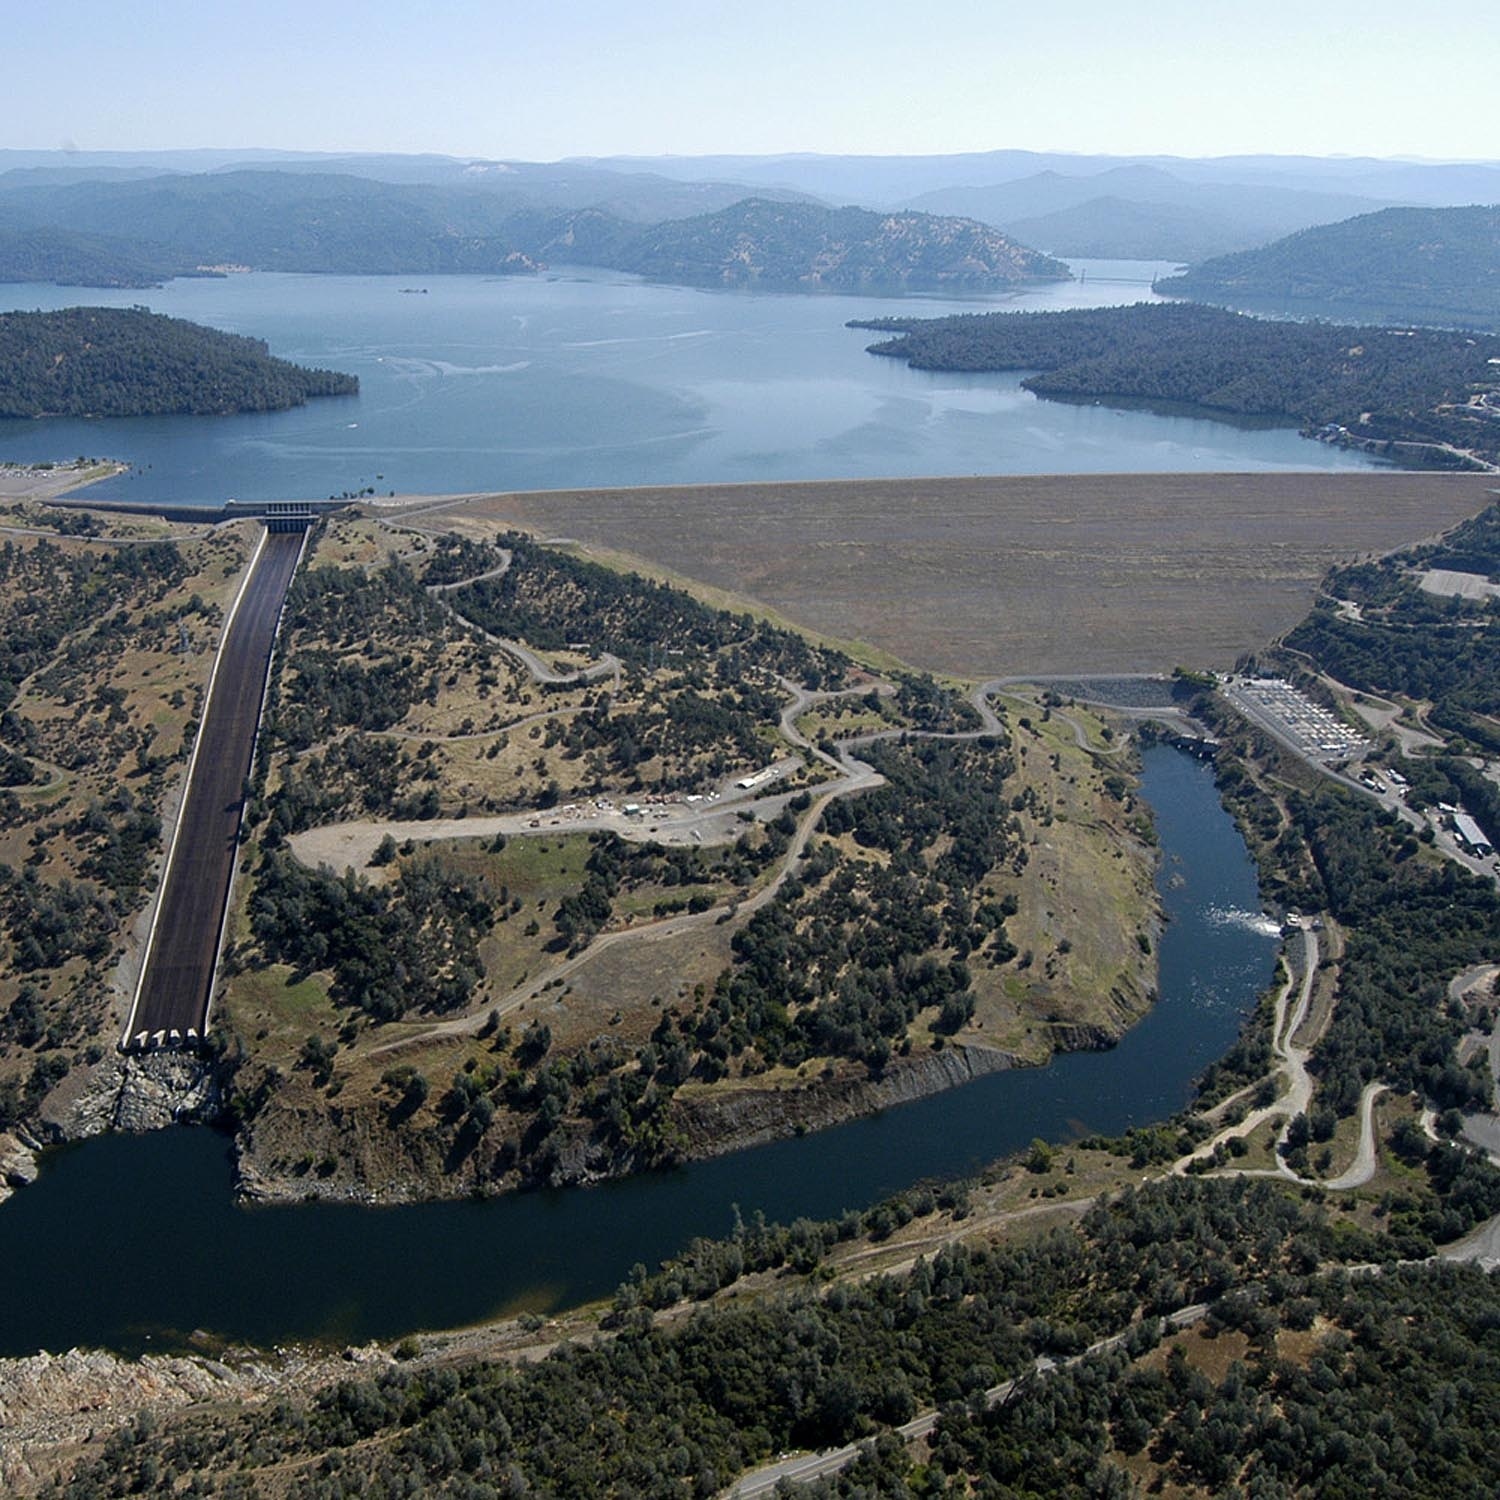 Oroville Dam in California, where water levels had fallen 30% by 2014. -Image Credit: California Department of Water Resources/WikimediaCommons